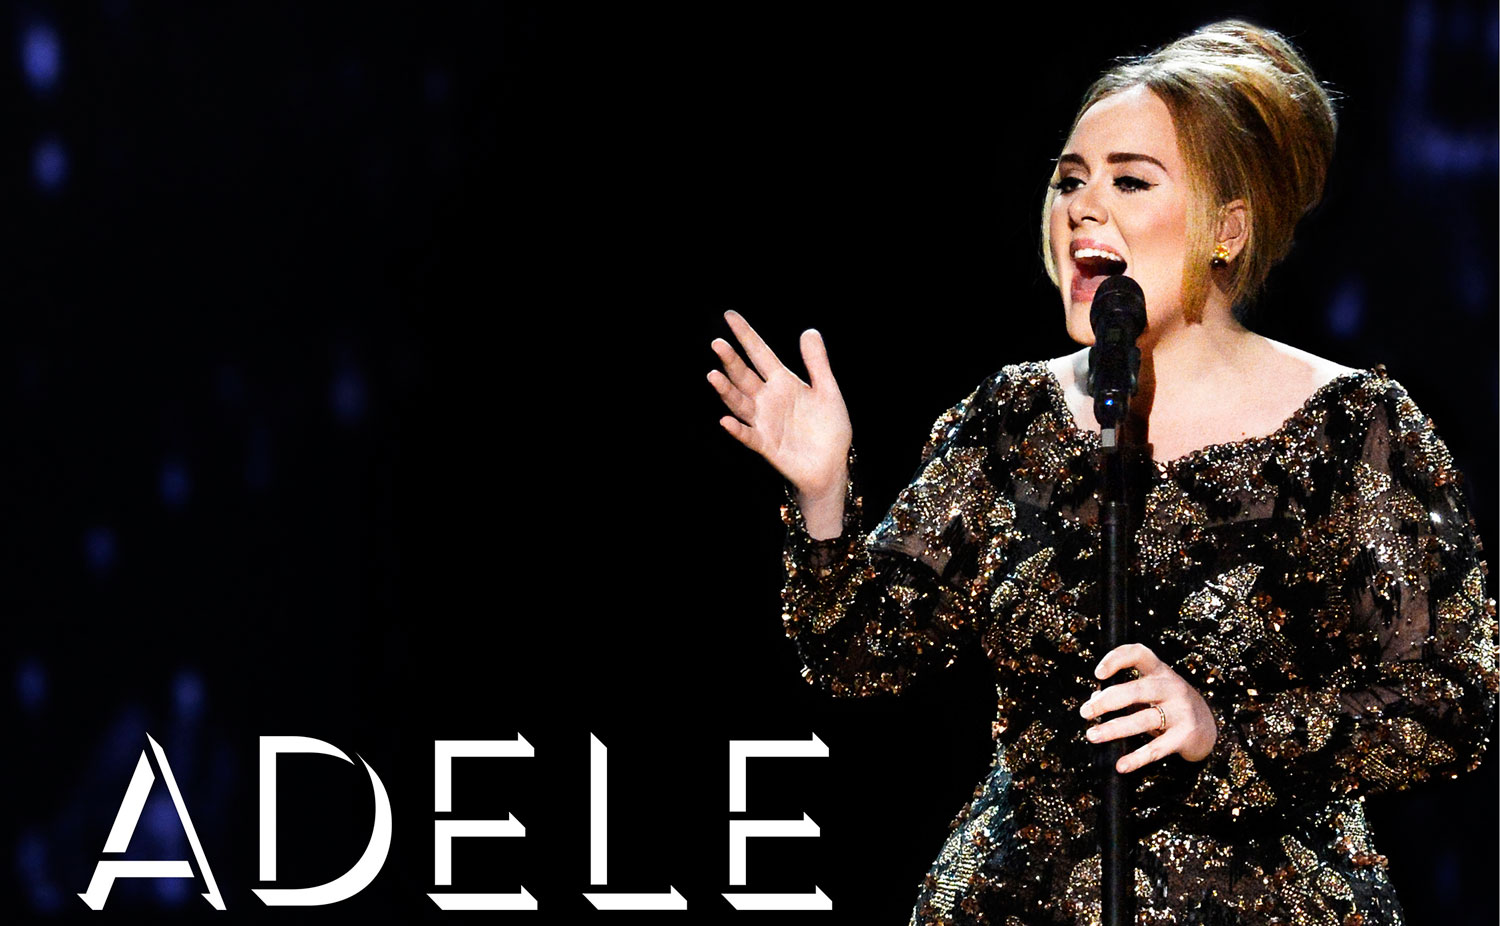 Adele all songs list download | Adele 25 Album Download